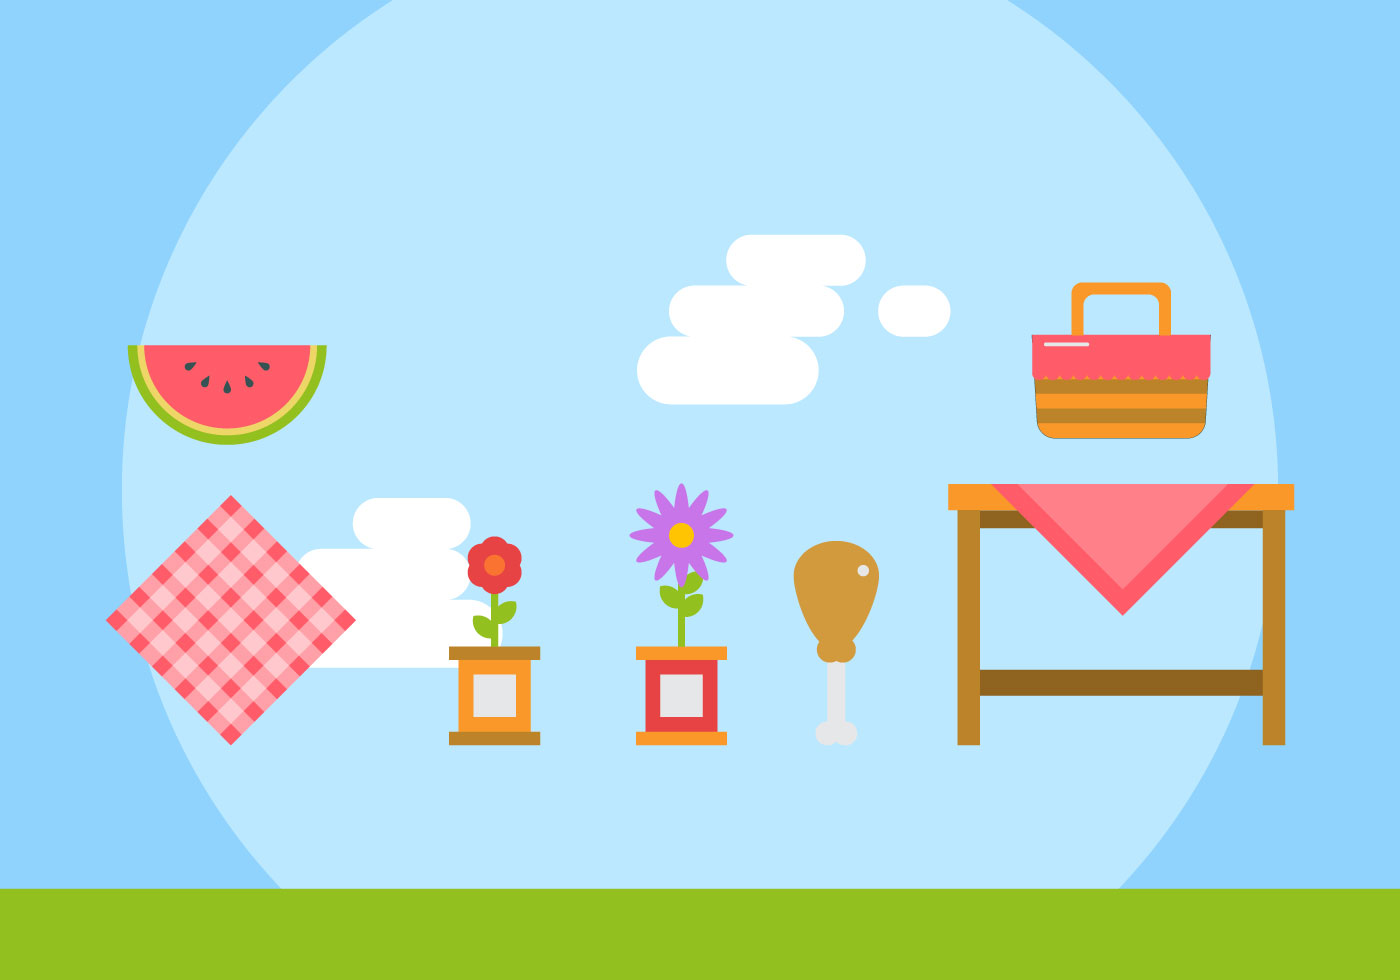 Free Family Picnic Vector Illustrations #3 - Download Free Vector Art ...